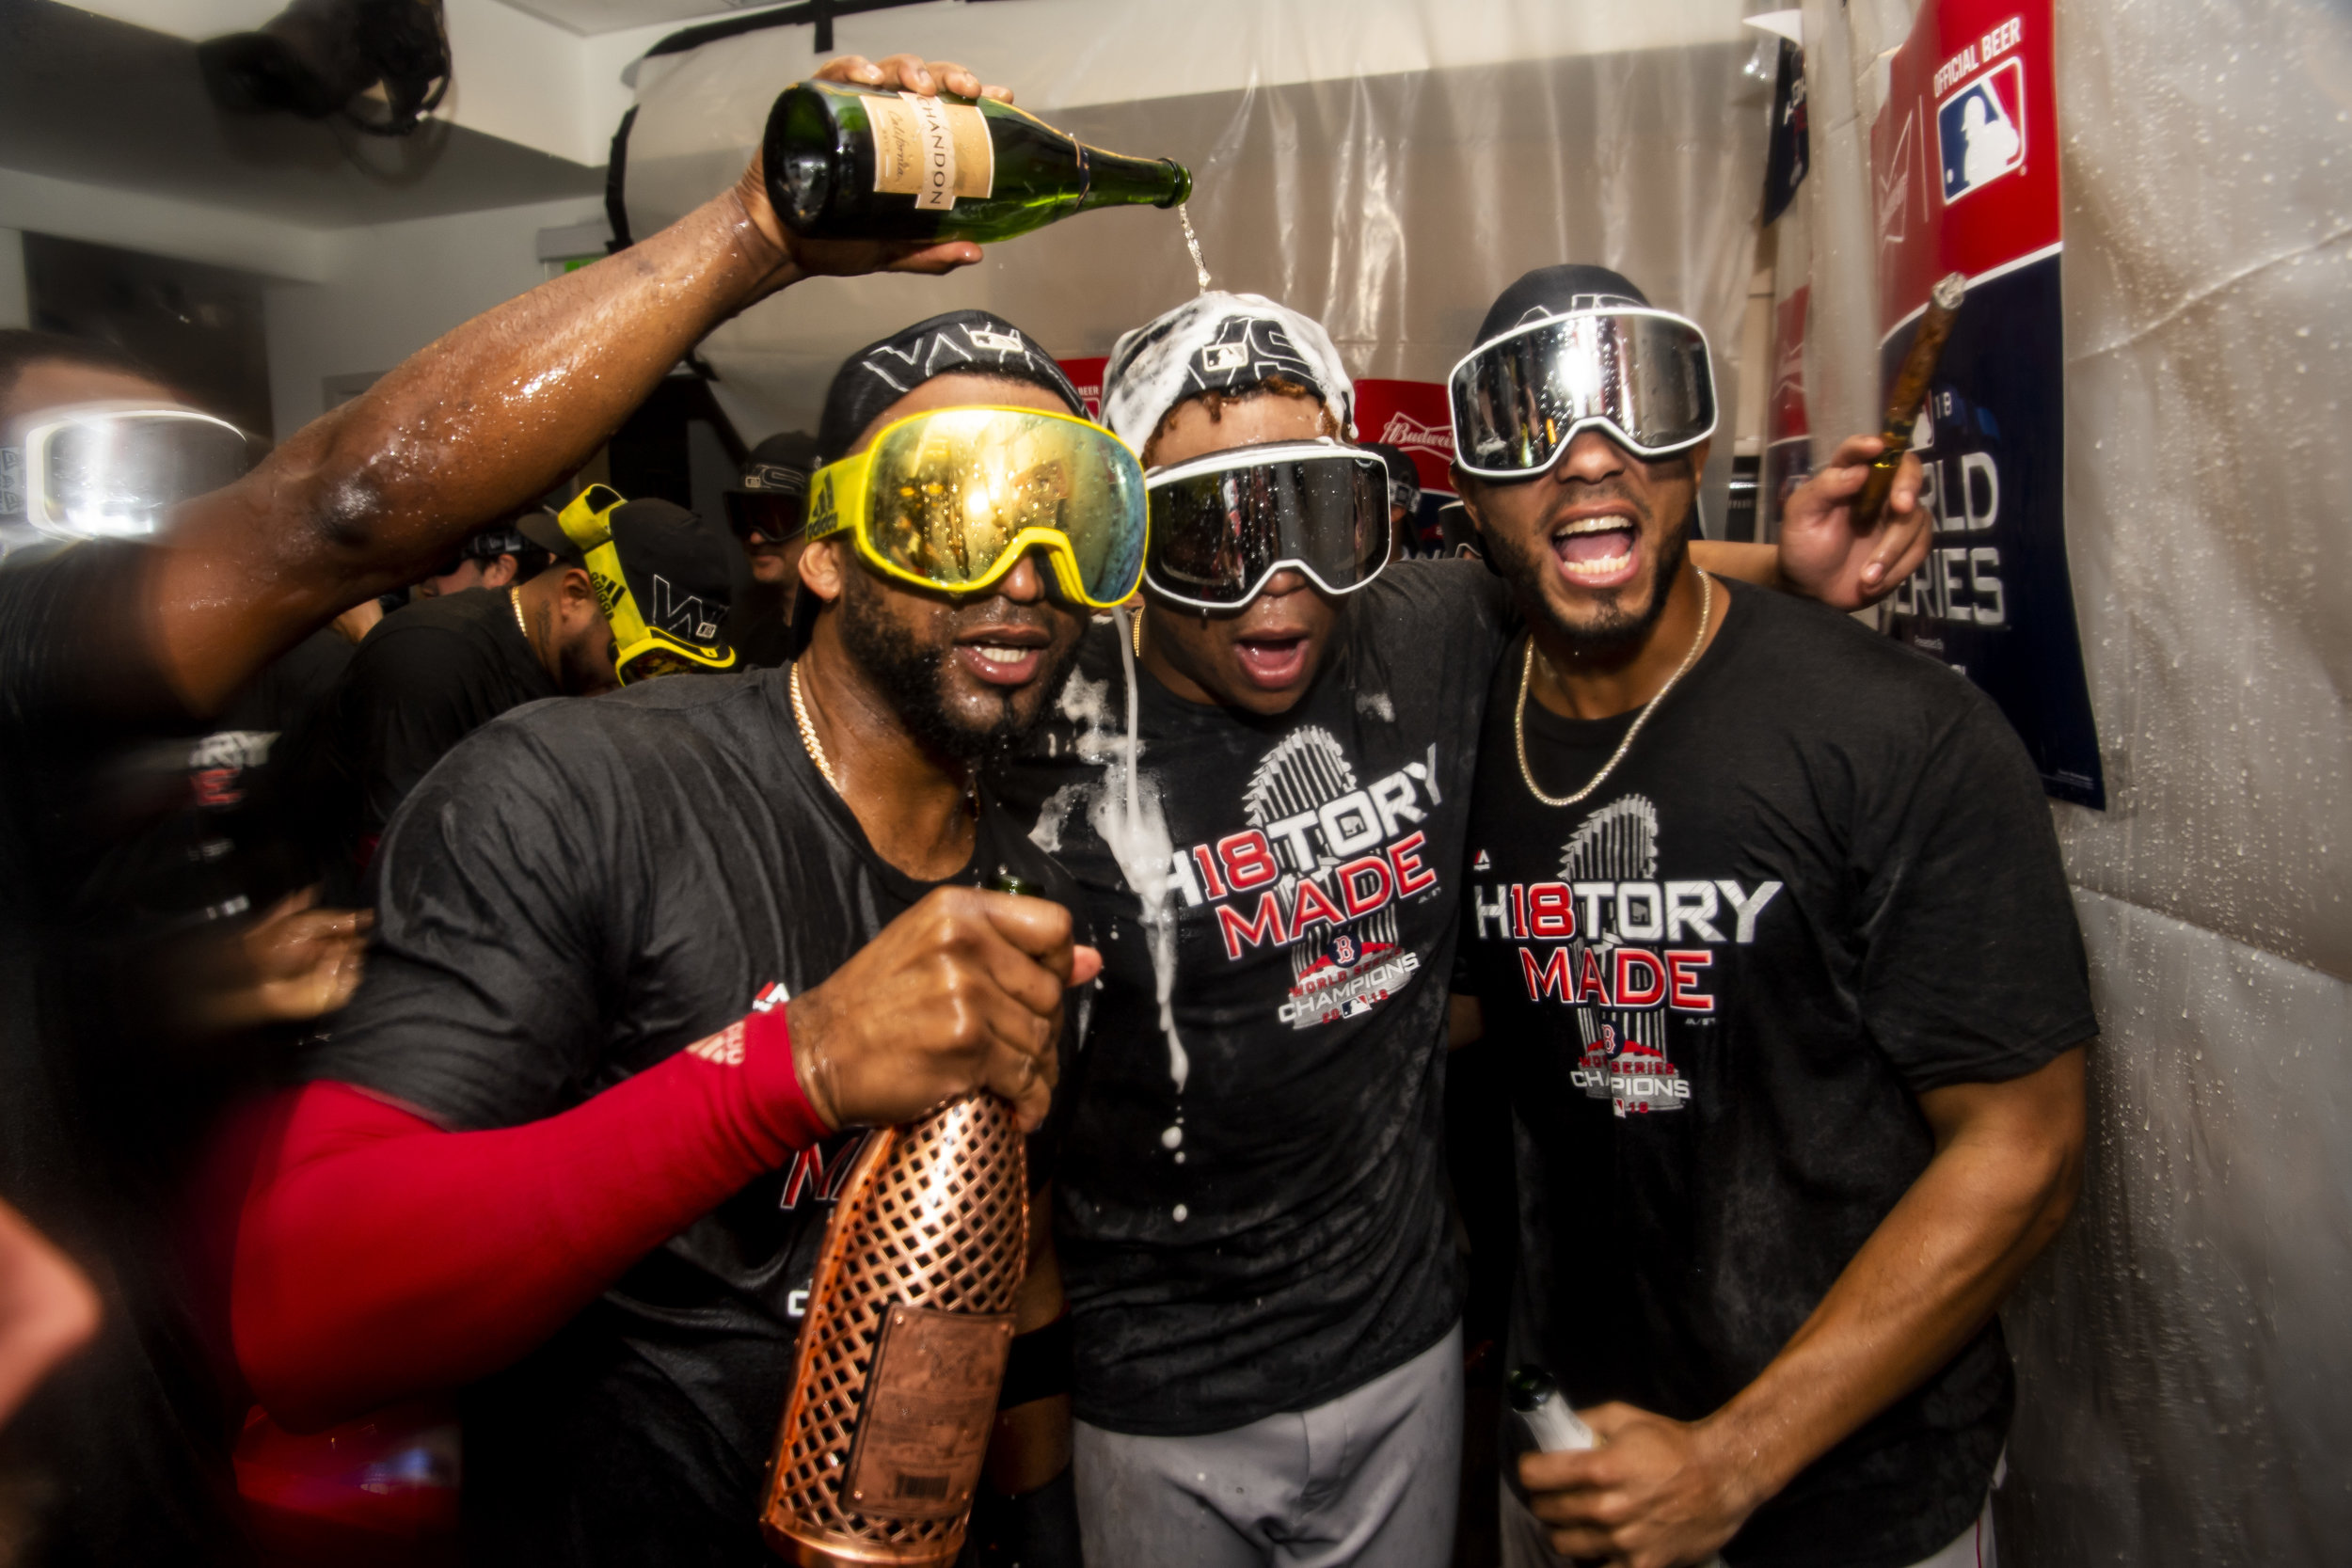 October 28, 2018, Los Angeles, Ca: Boston Red Sox second basemen Eduardo Nunez, Boston Red Sox third basemen Rafael Devers and Boston Red Sox shortstop Xander Bogaerts celebrate after the Boston Red Sox defeated the Los Angeles Dodgers in Game 5 to win the World Series at Dodger Stadium in Los Angeles, California on Saturday, October 28, 2018. (Photo by Matthew Thomas/Boston Red Sox)